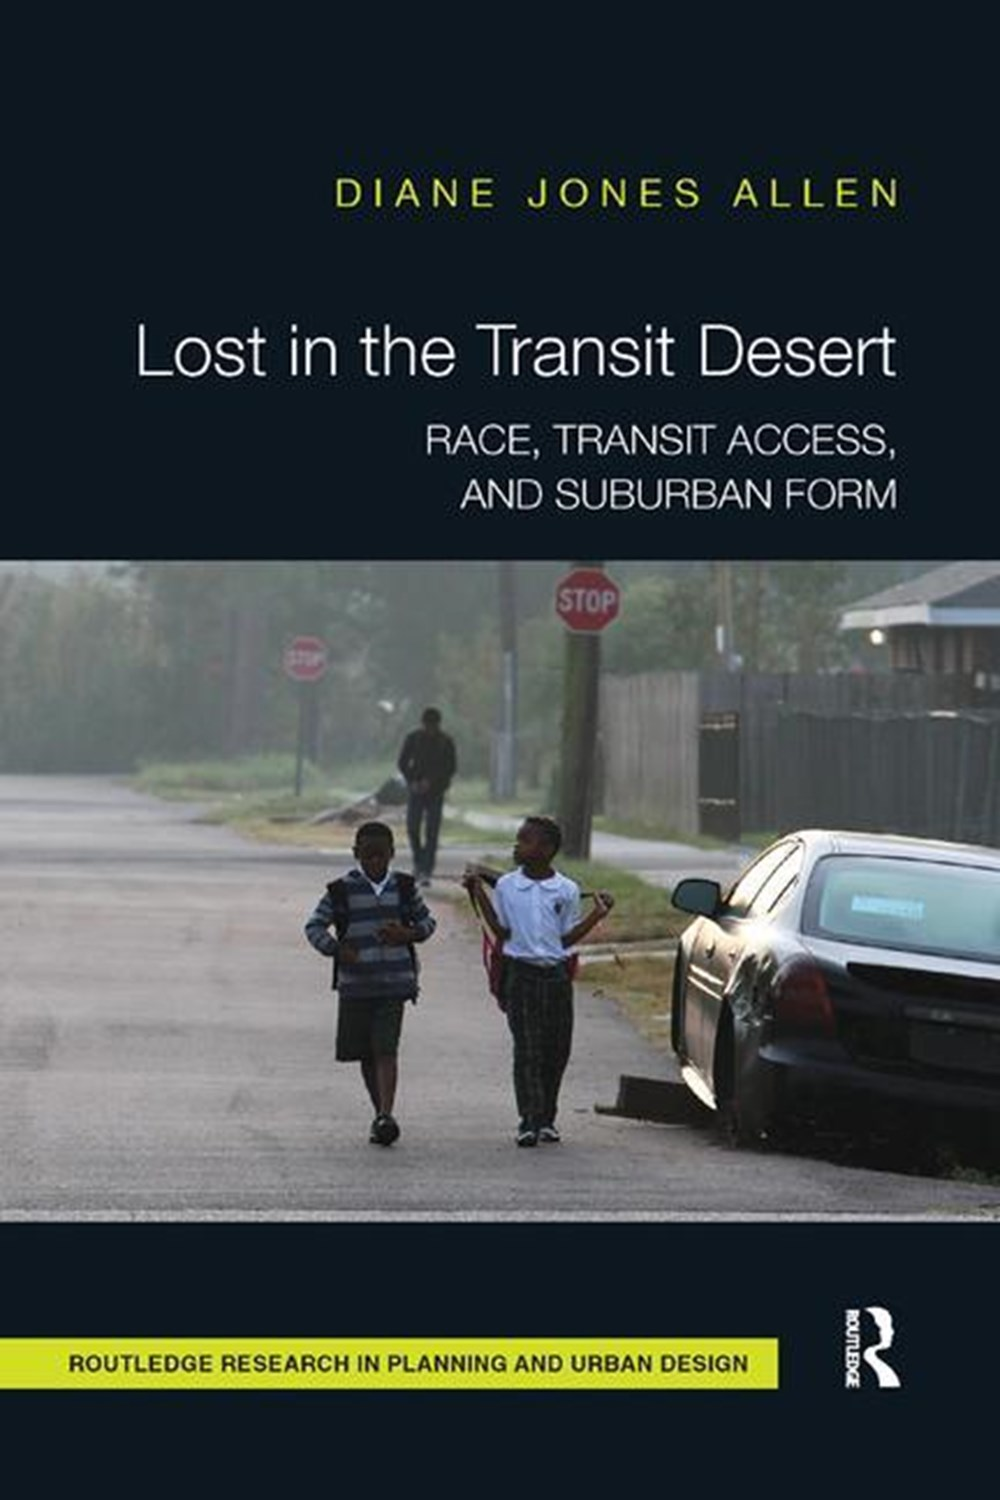 Lost in the Transit Desert Race, Transit Access, and Suburban Form